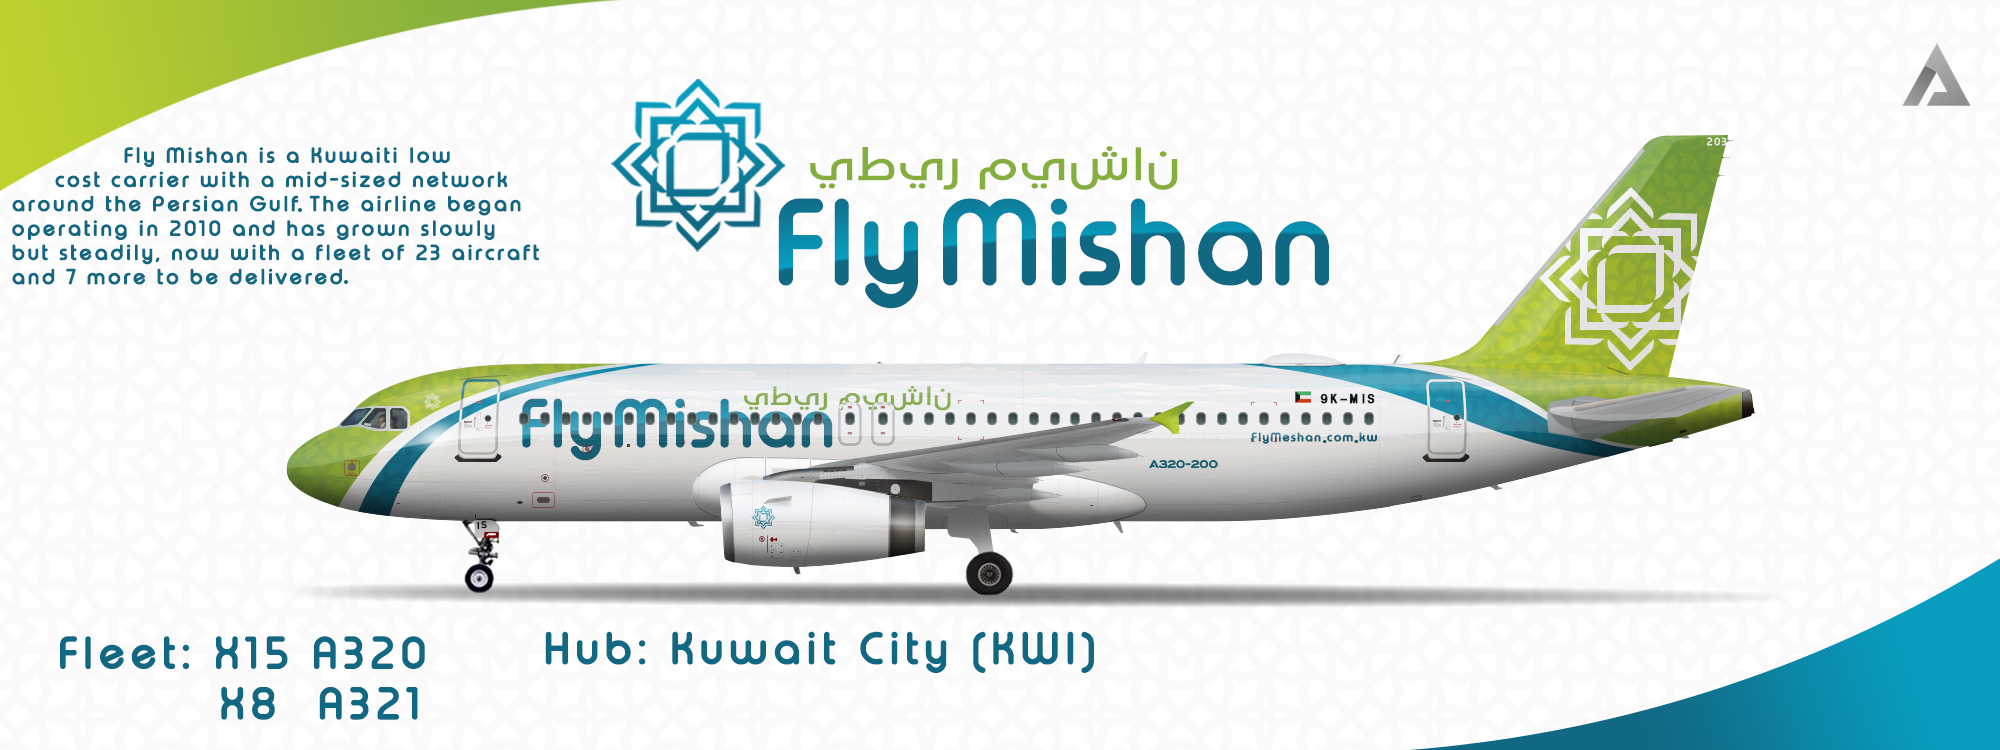 FlyMishan_A320.png